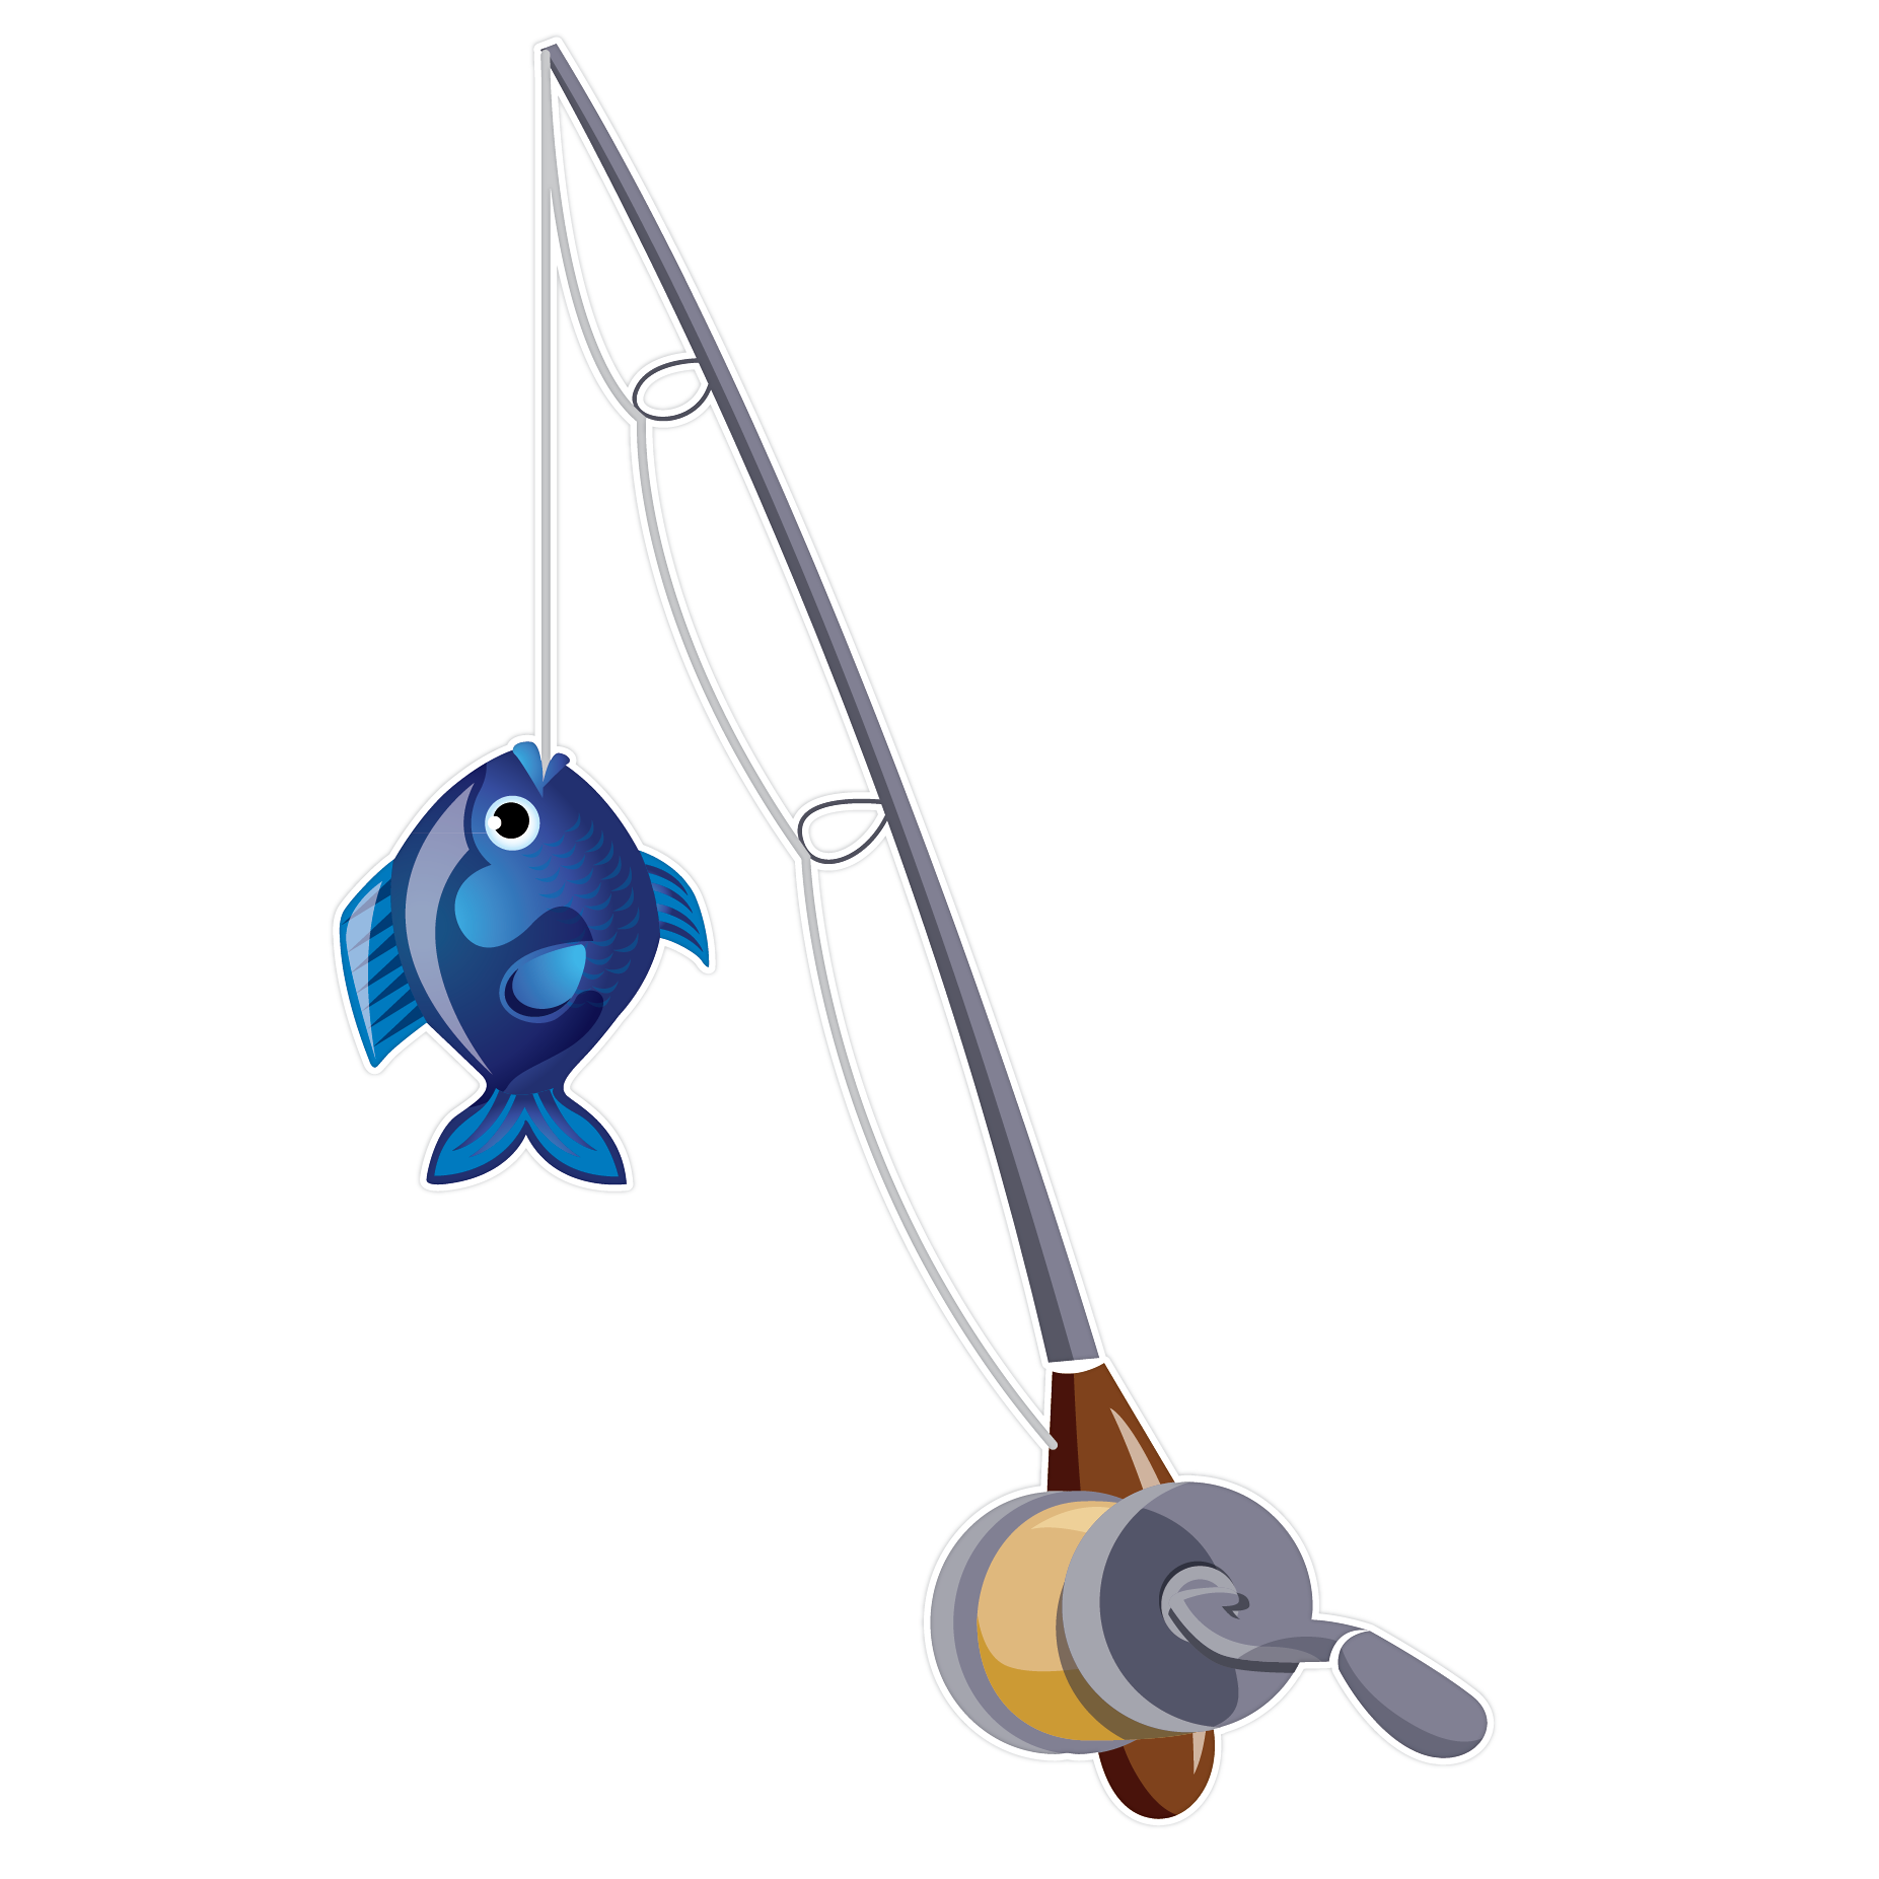 Fishing Pole Clipart Fishing Rod Image 3-Fishing pole clipart fishing rod image 3-7